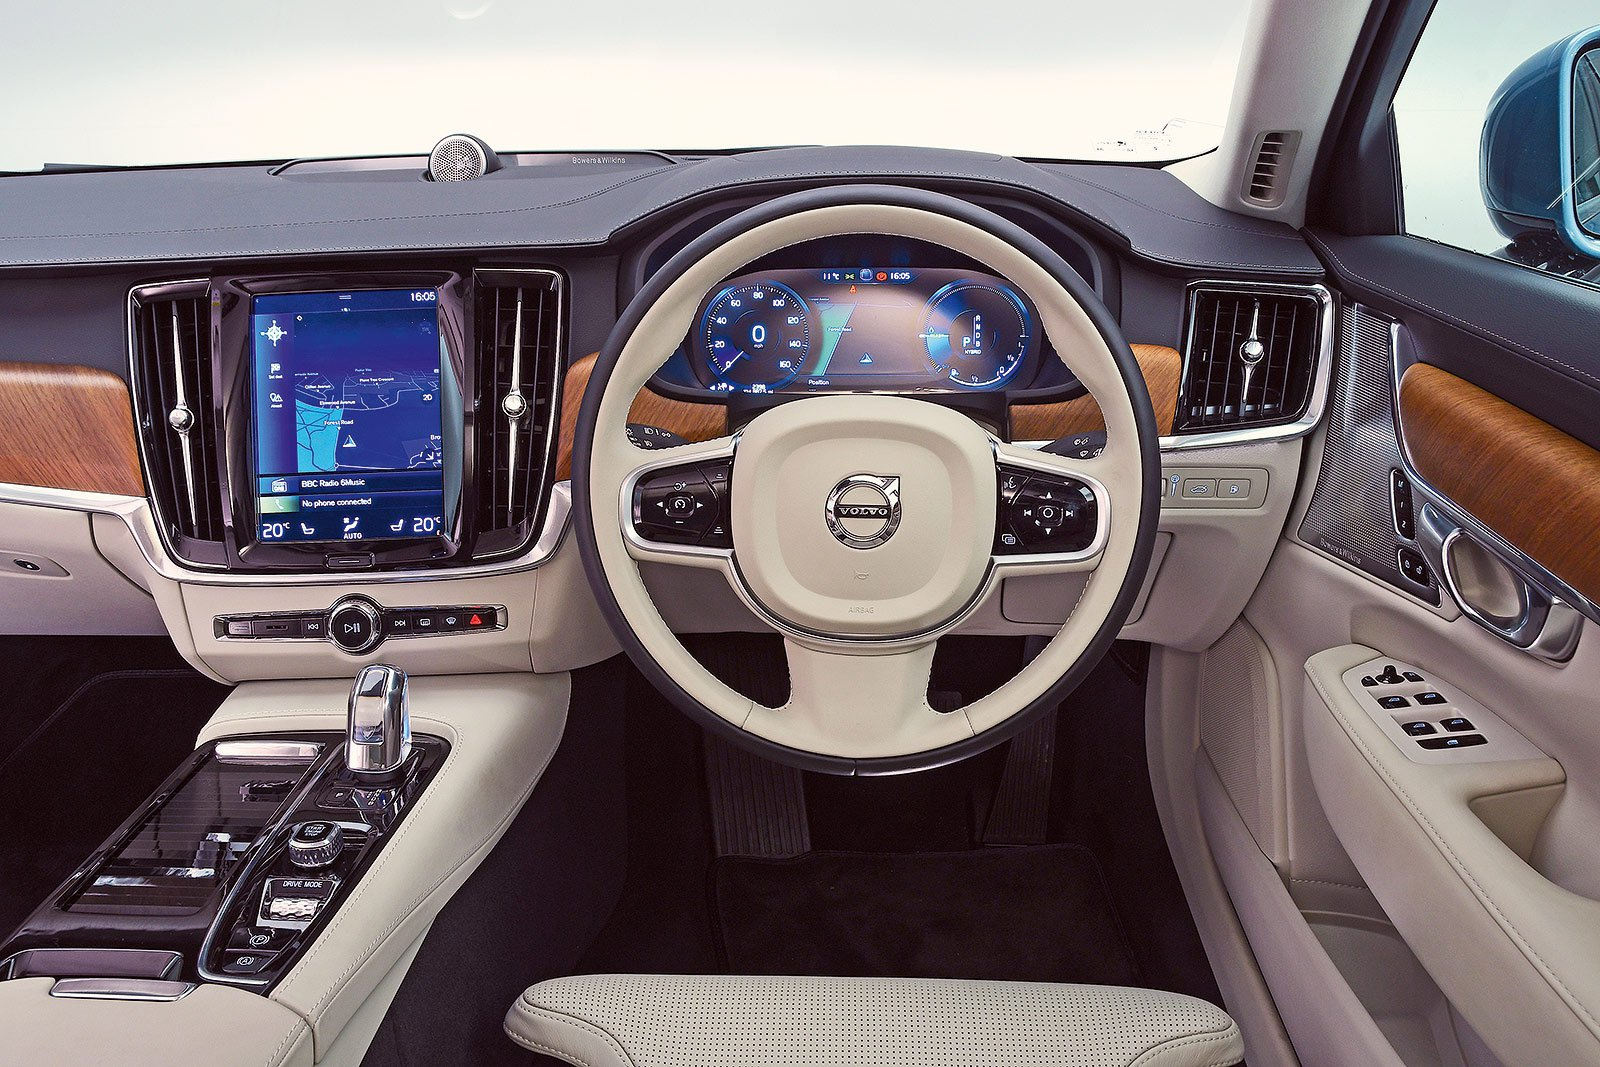 Volvo S90 T4 Momentum Plus Automatic - interior